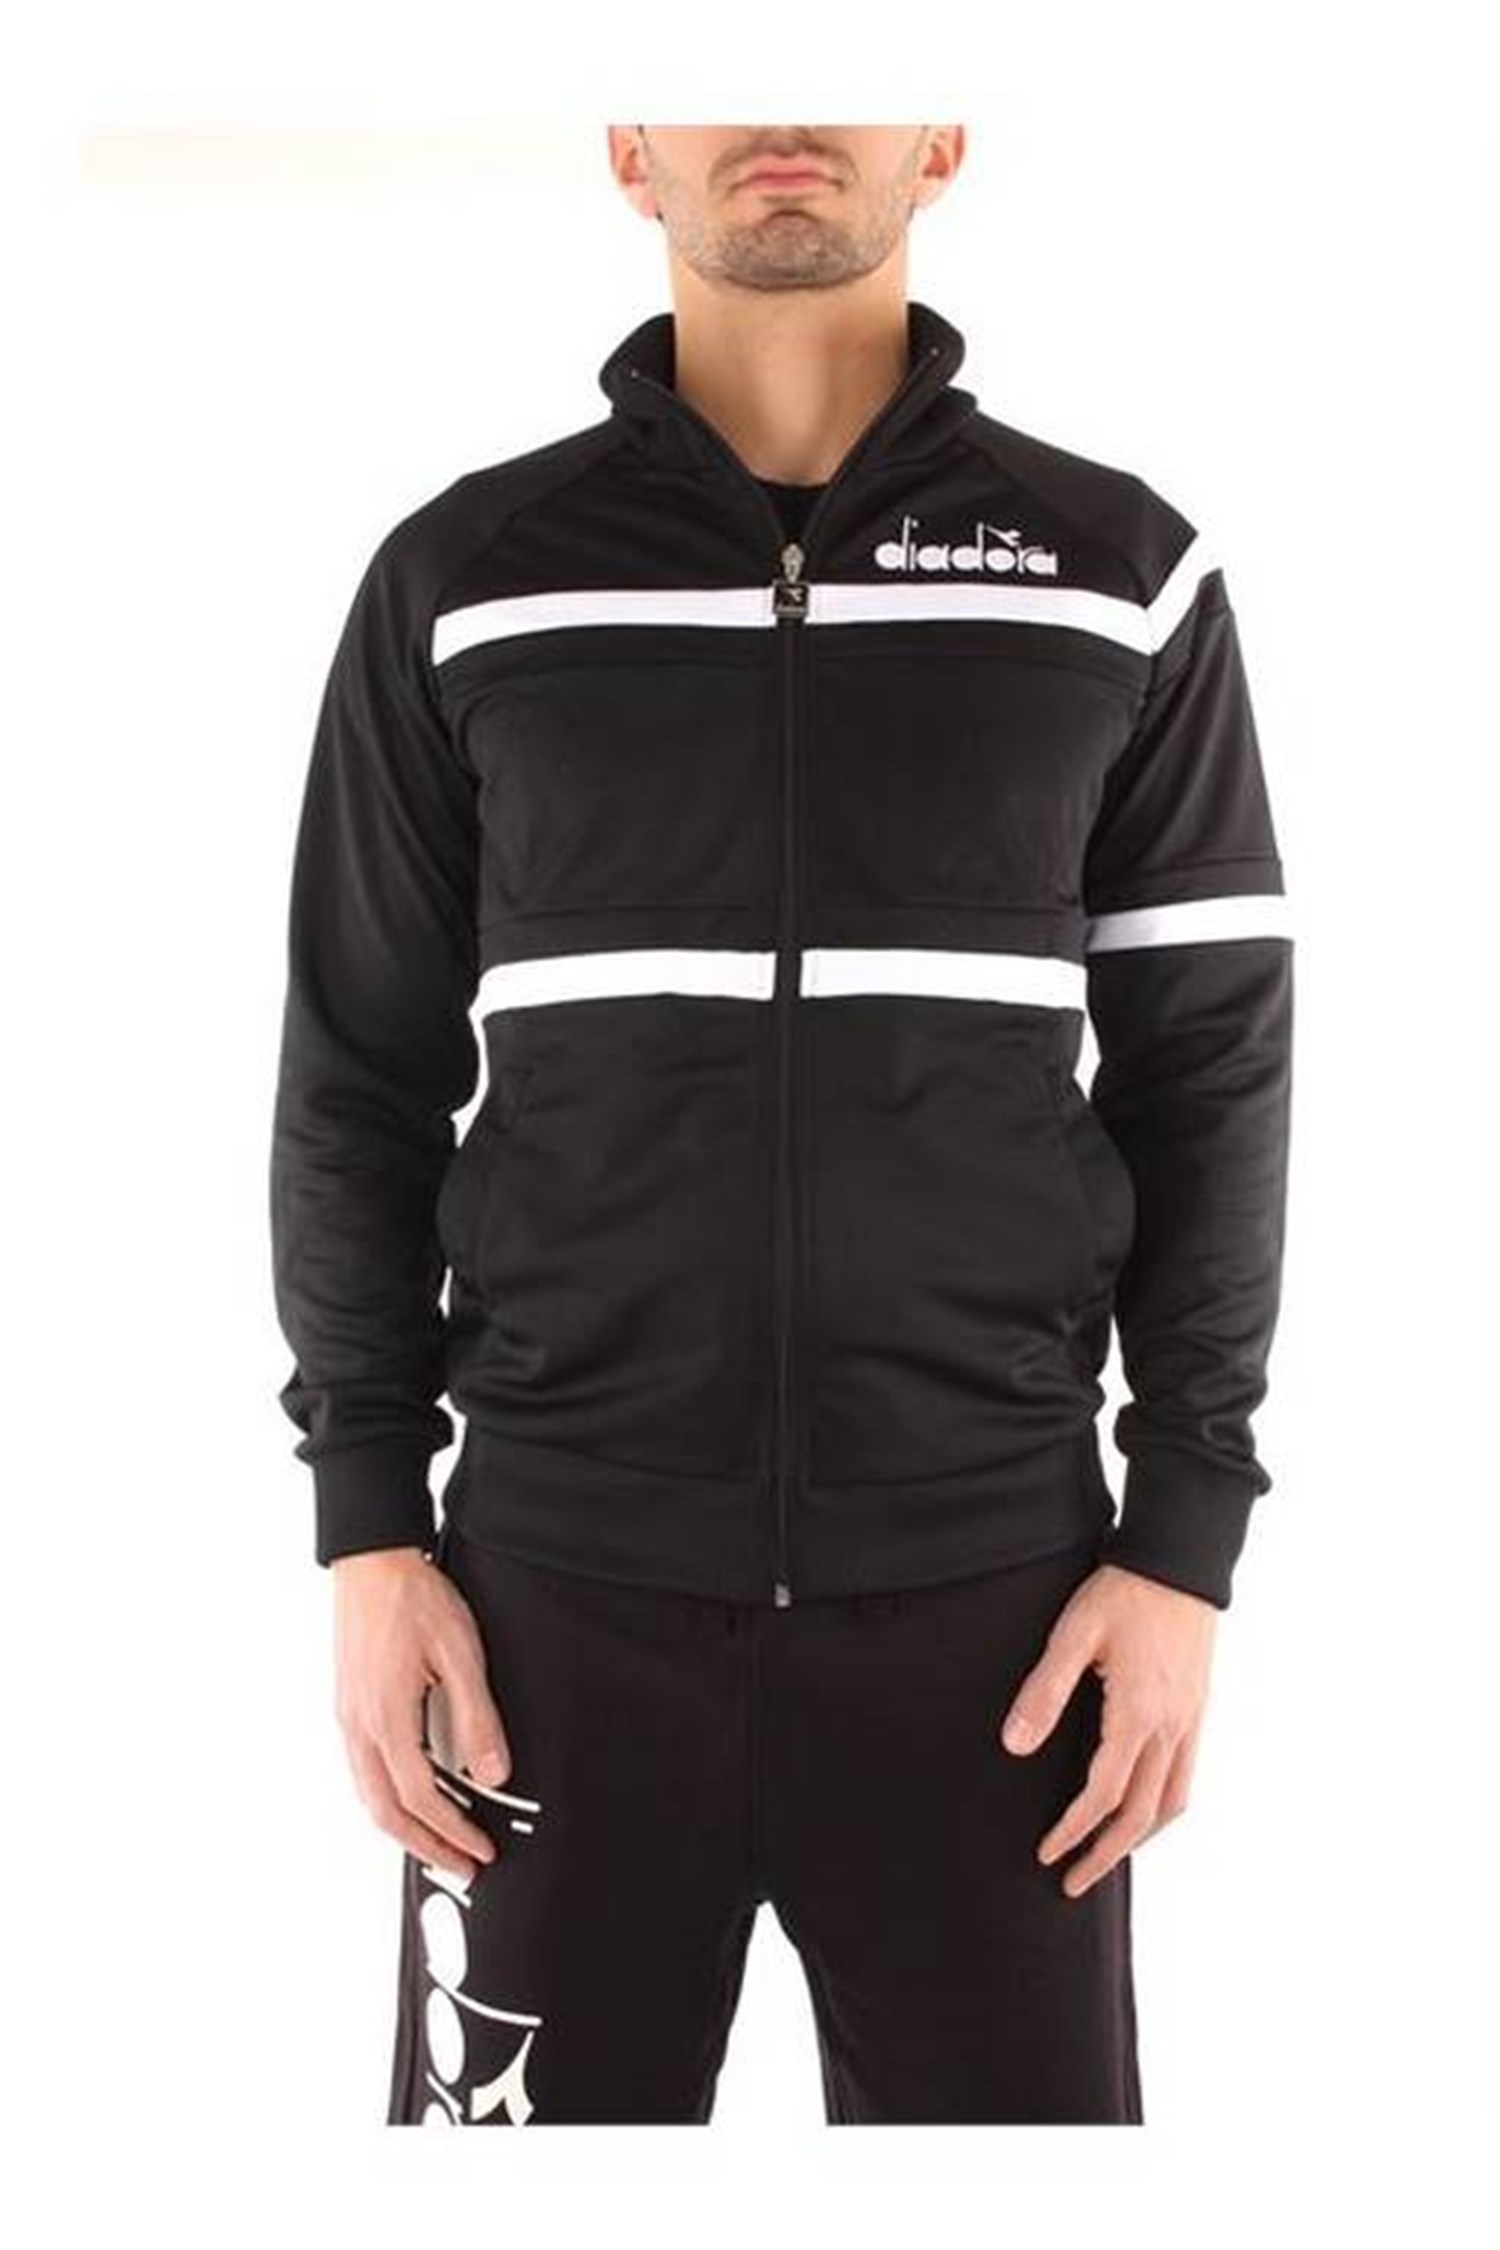 Diadora Clothing Man Blazer BLACK 502.171211